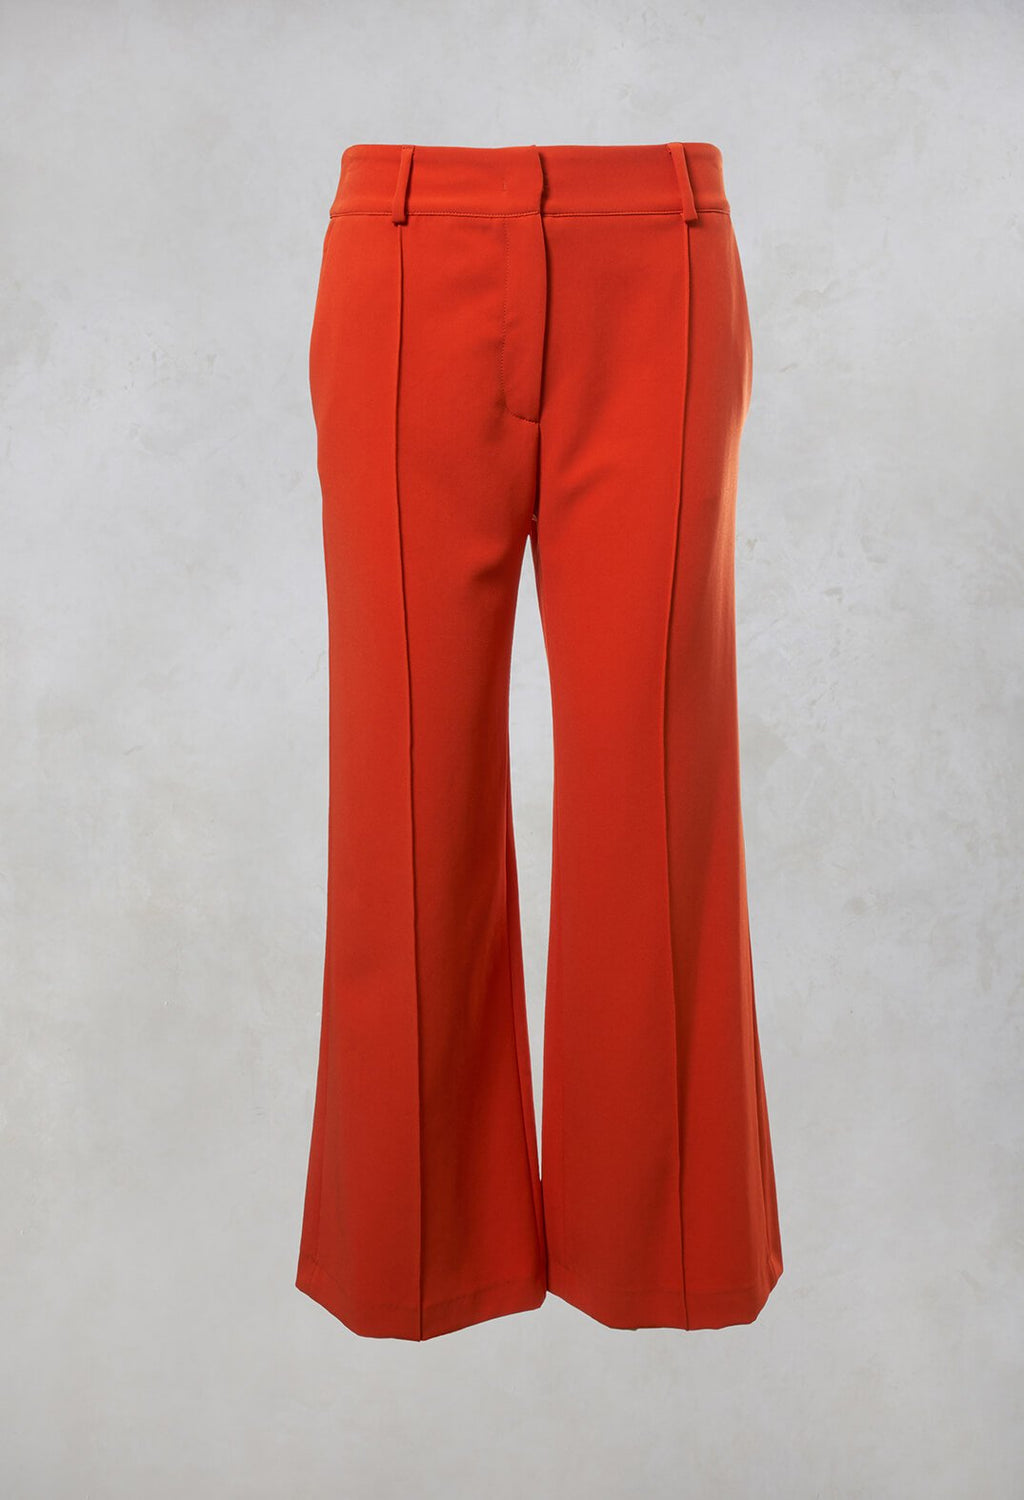 Tailored Trousers in Orange